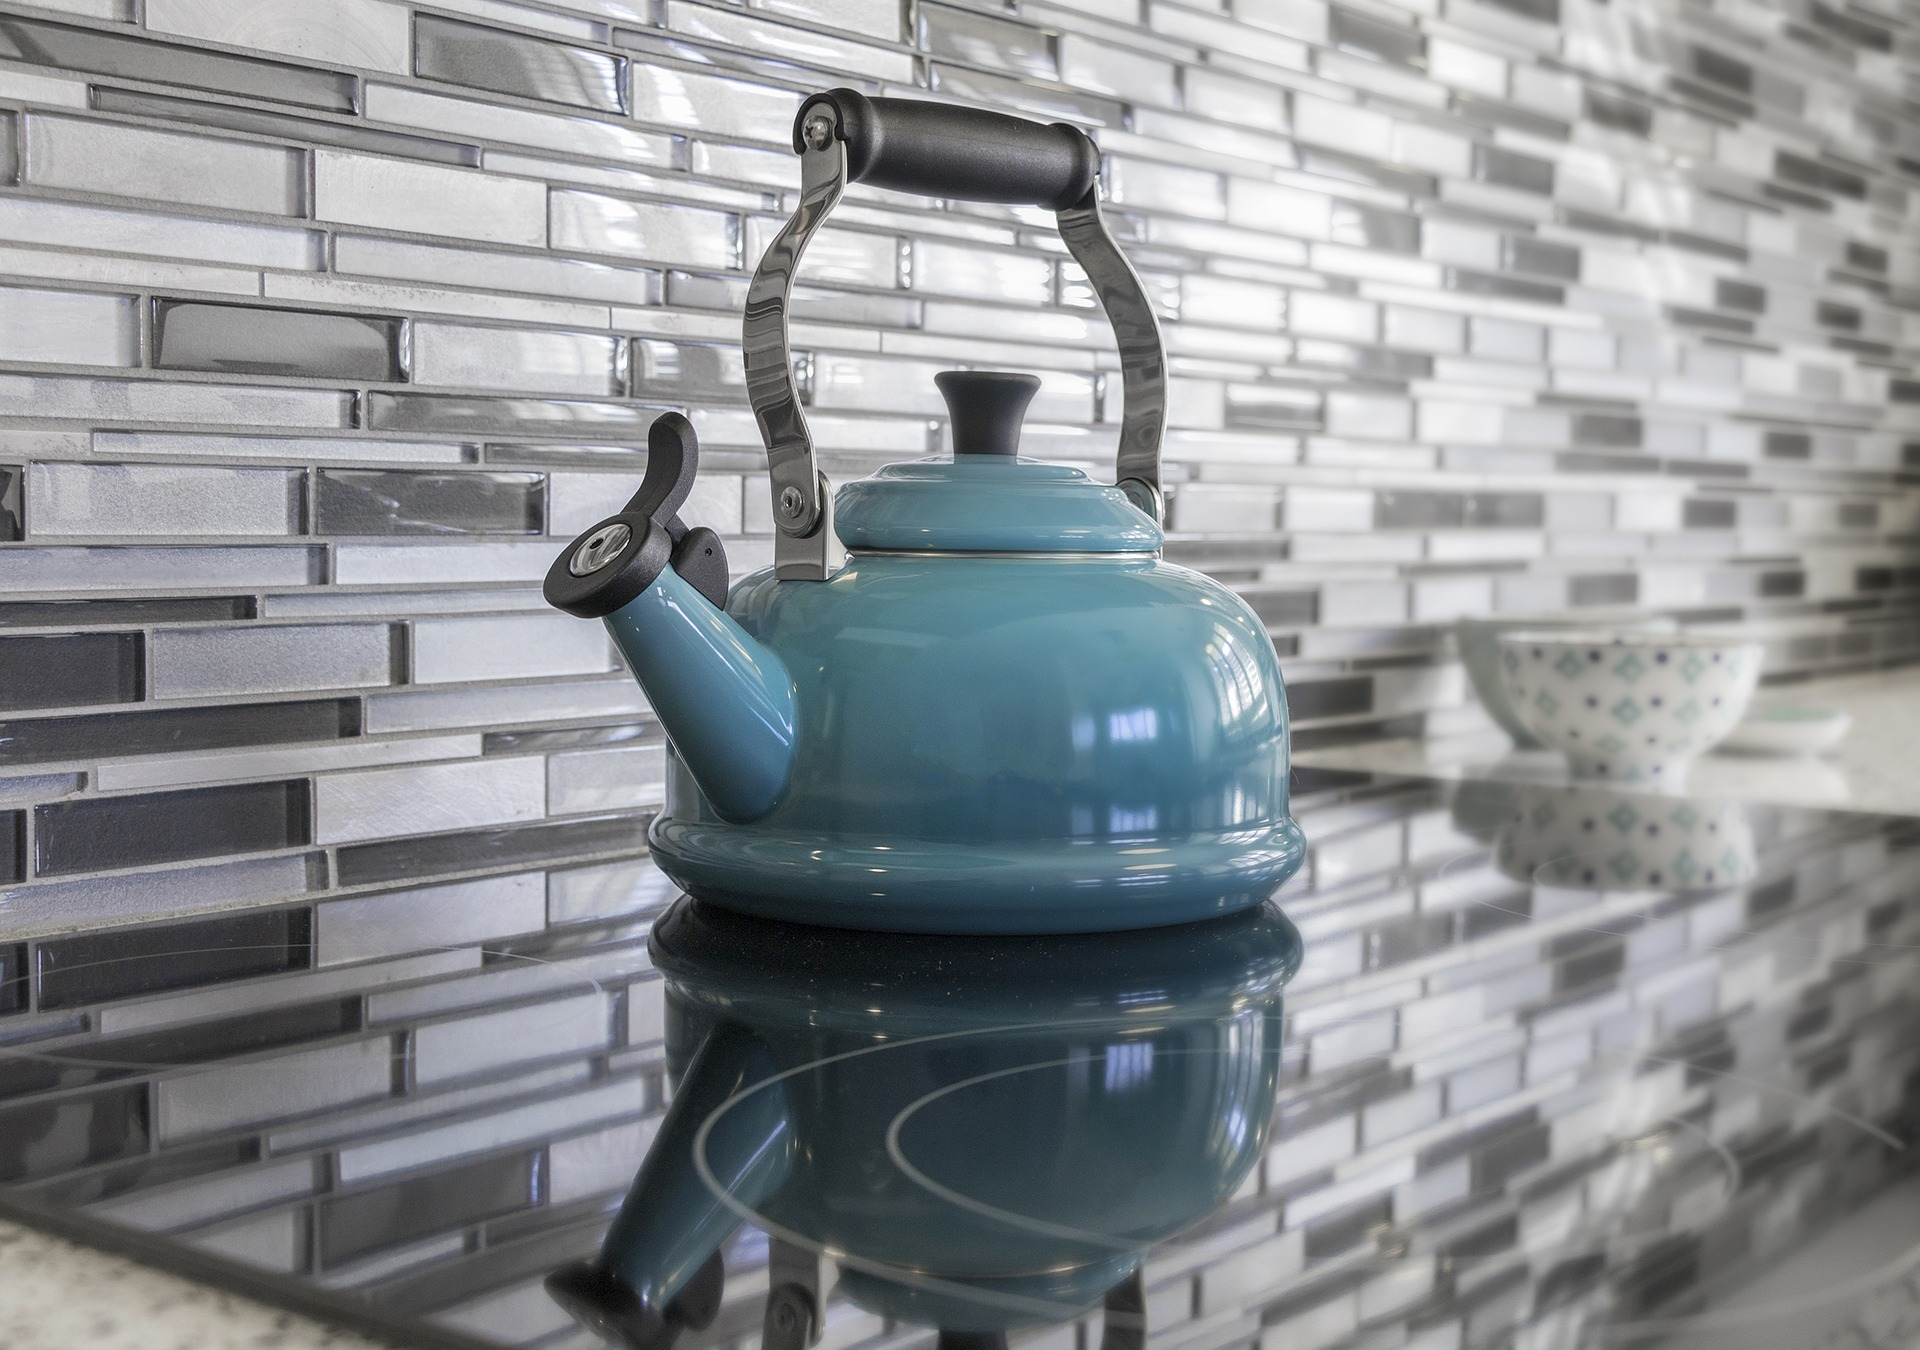 Kitchen Tiles: An Important Area Of Discussion